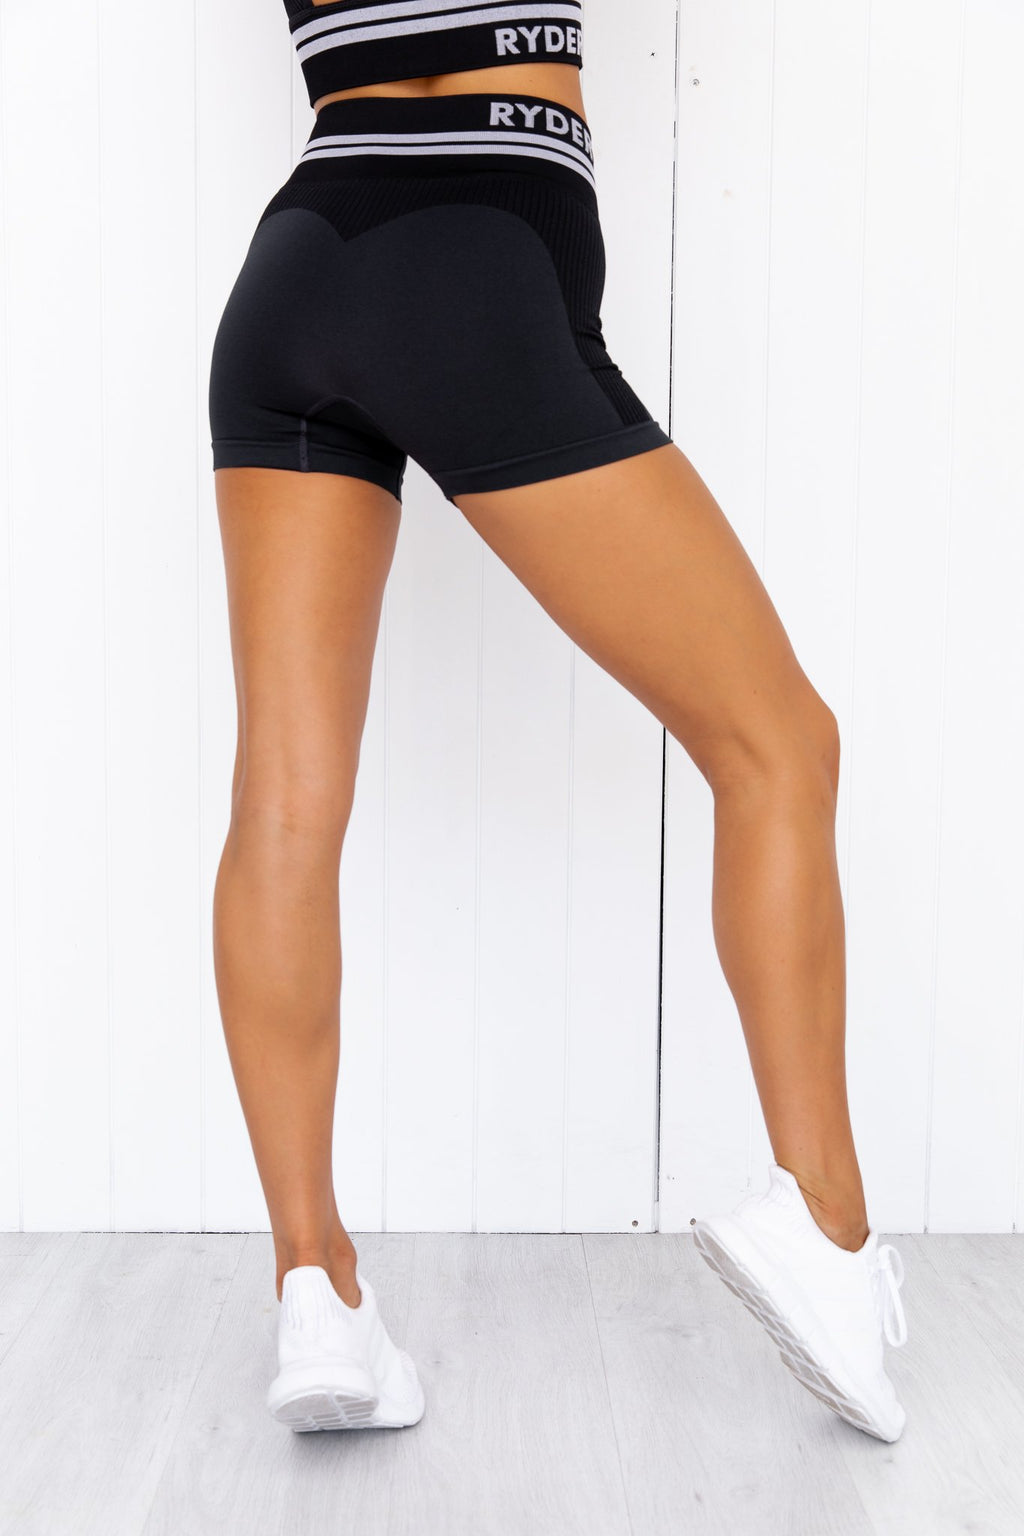 Freestyle Seamless High Waisted Shorts - Black - PURE DASH